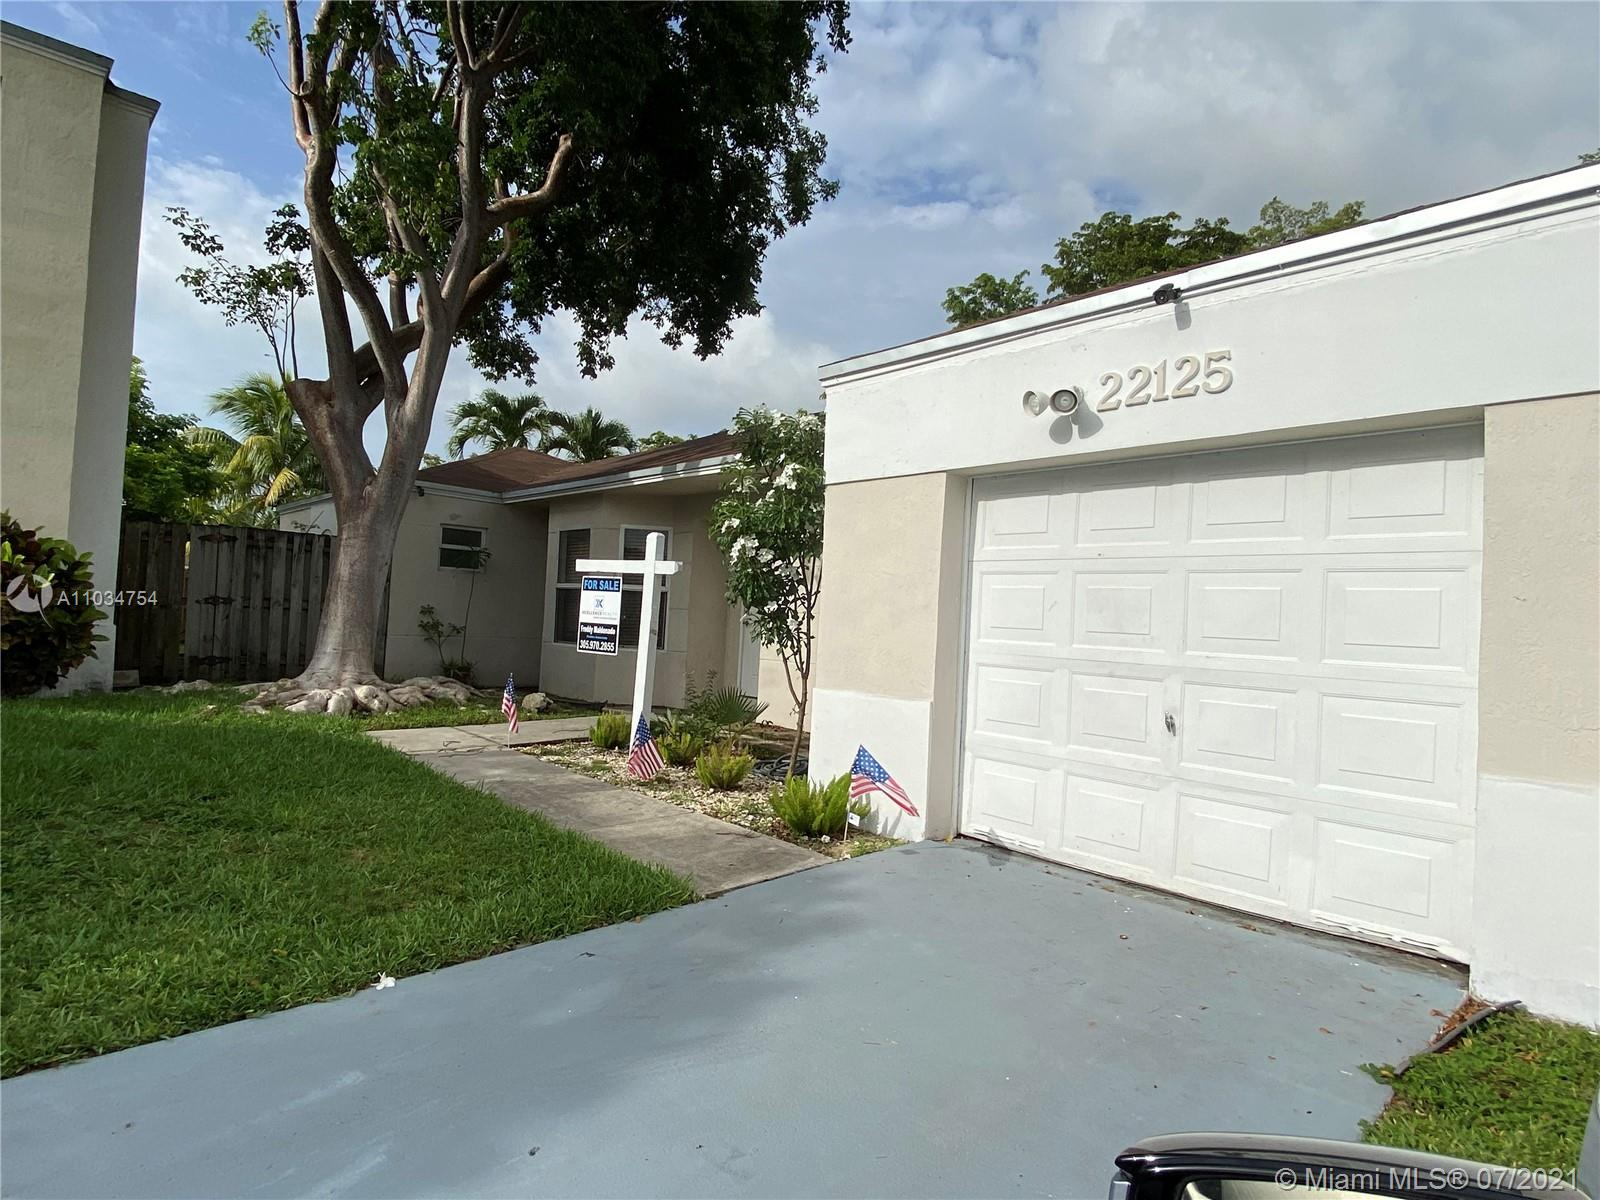 WONDERFUL LAKE VIEW HOME AND SPACIOUS BACKYARD. 3 BEDROOM 2 BATH HOME IN CHARMING SUBDIVISION CALLED CATALINA..